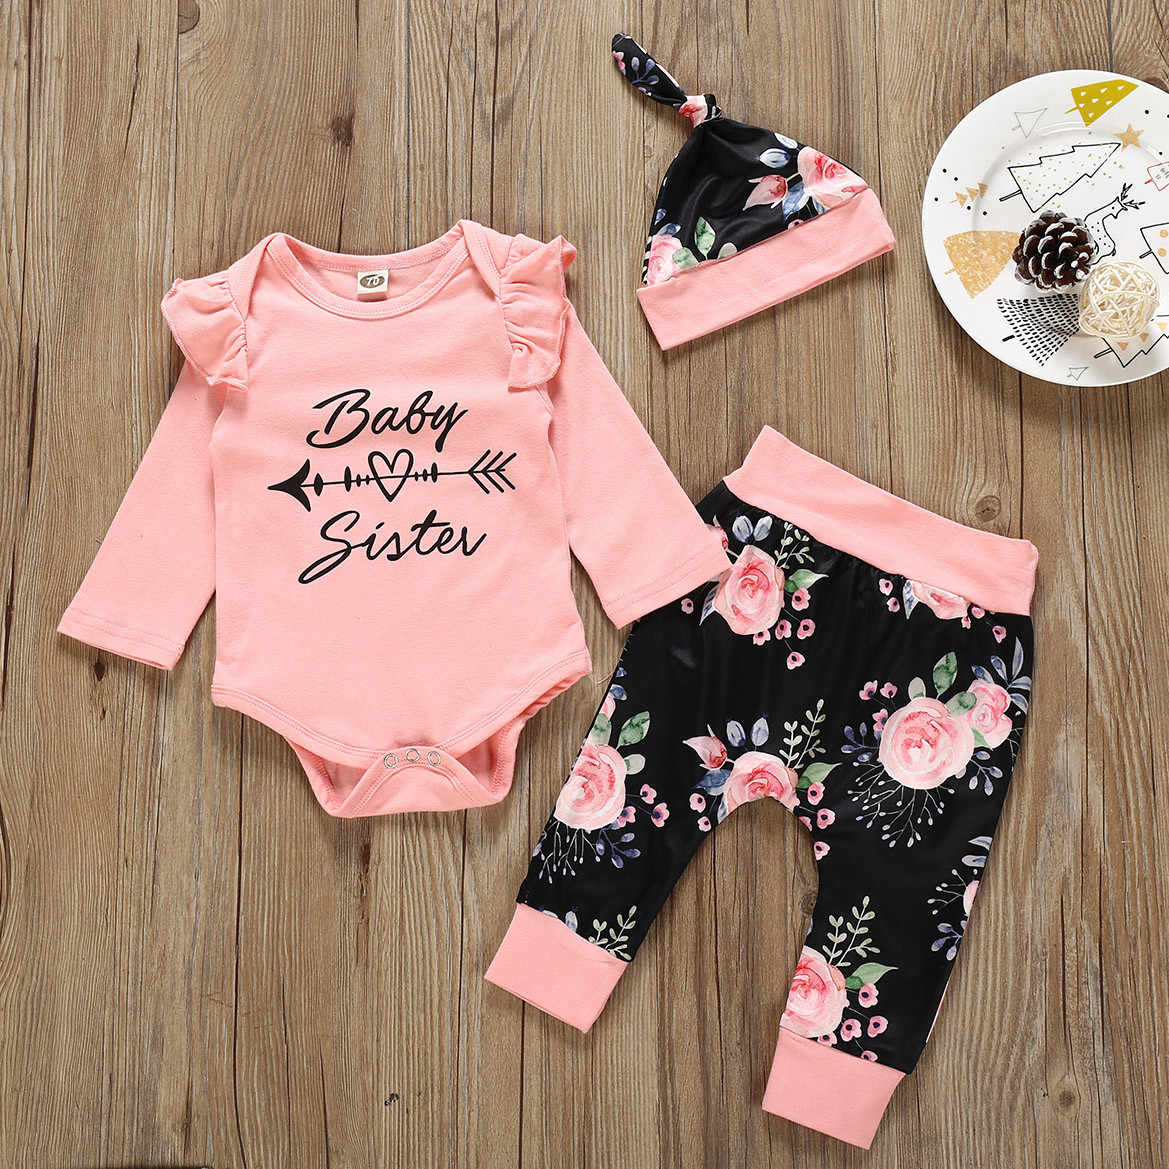 Toddler Infant Baby Boy Girl clothes Outfits Autumn Letter Romper+Print Pants+Cap Girls Outfits clothes Set roupa infantil 2019